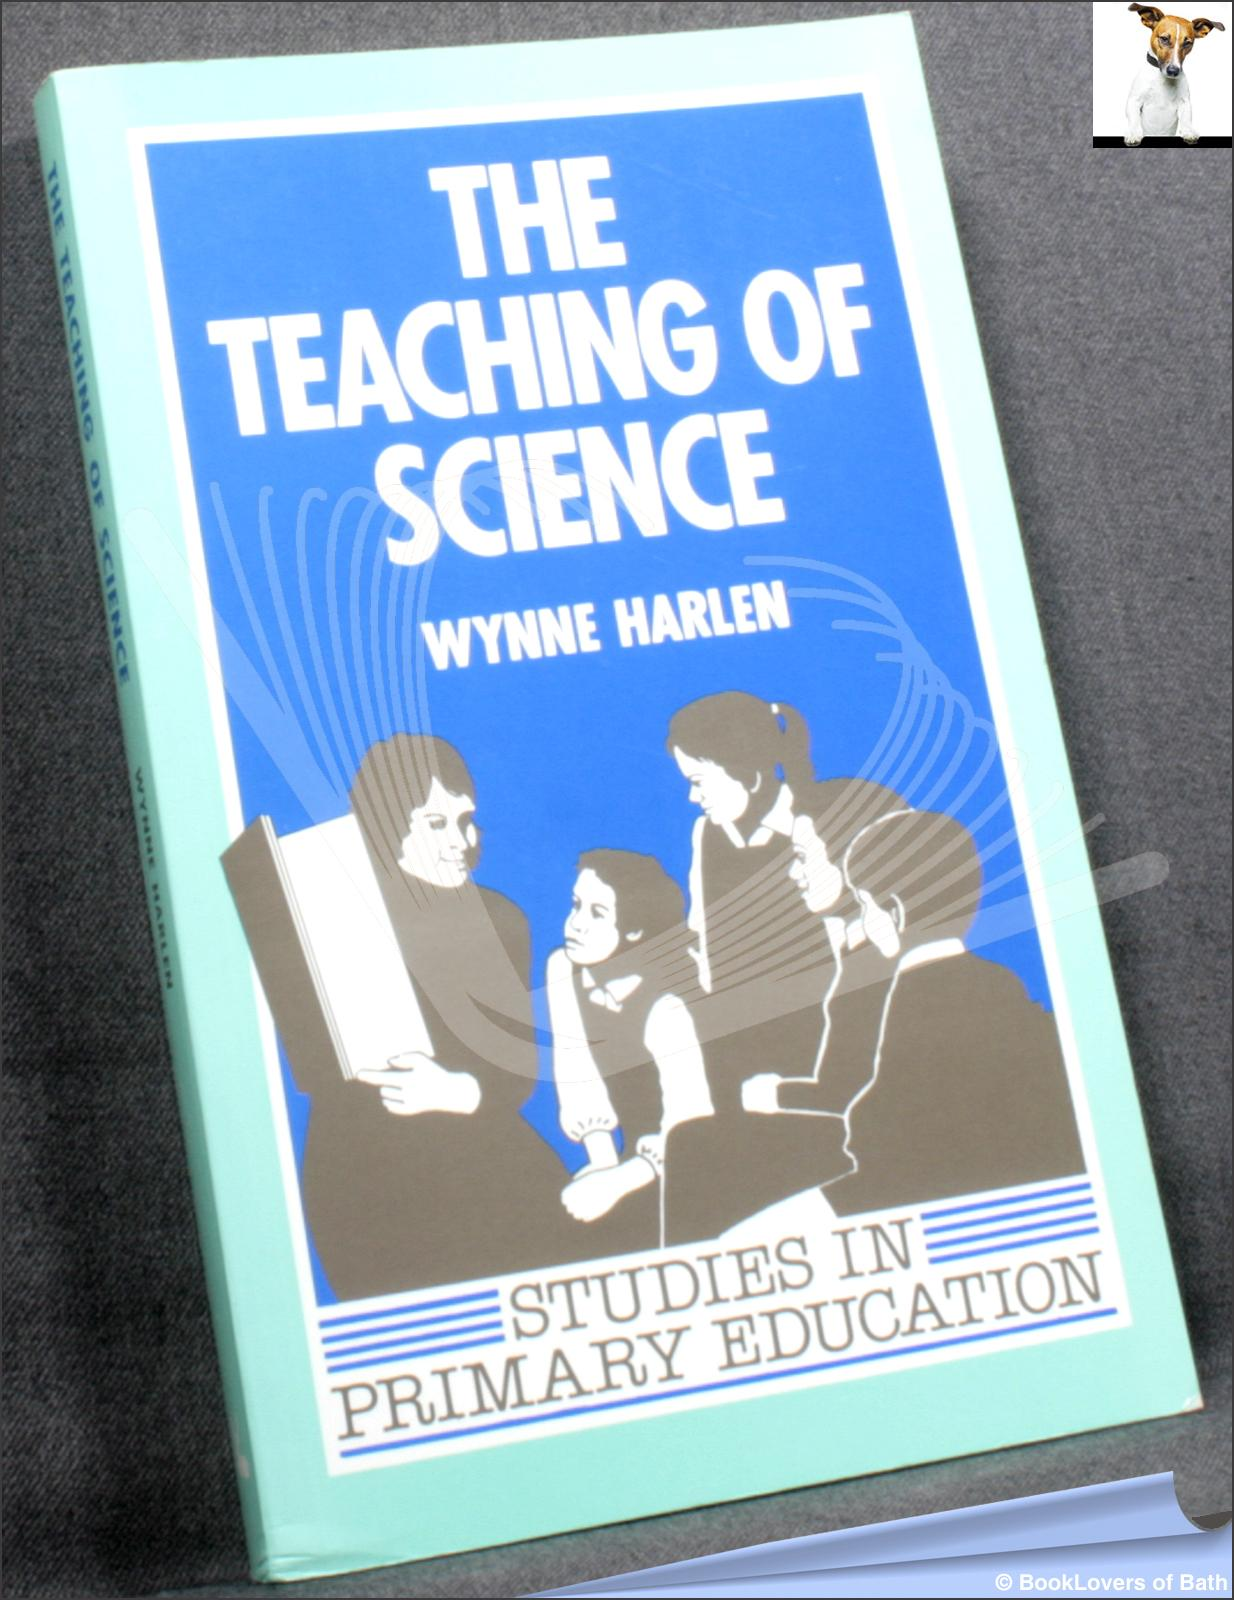 The Teaching of Science - Wynne Harlen